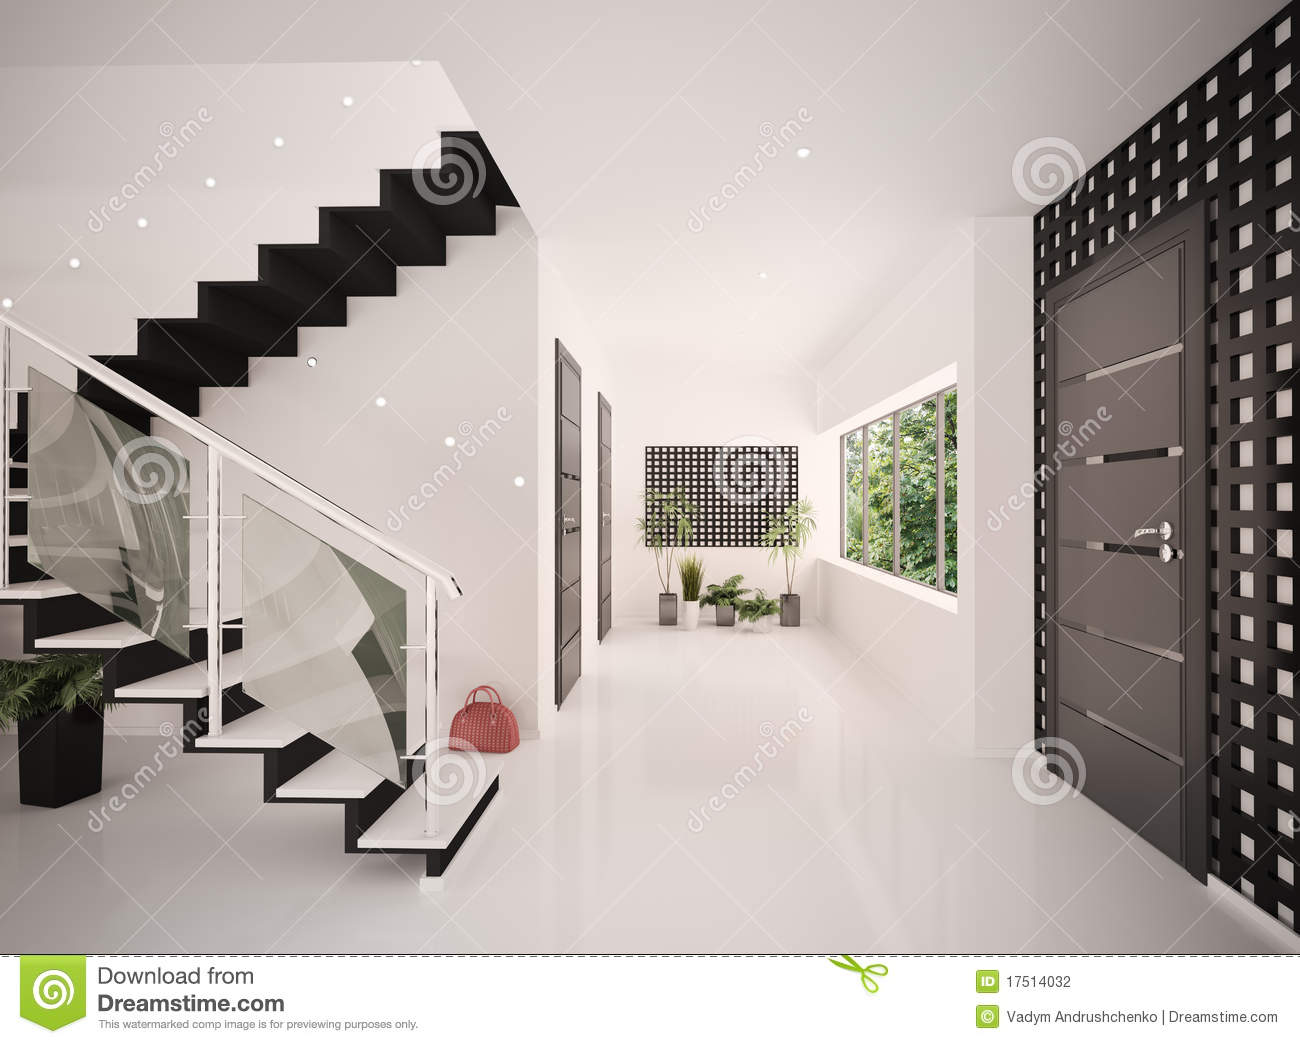 L 39 int rieur du hall d 39 entr e moderne 3d rendent for Interieur maison 3d